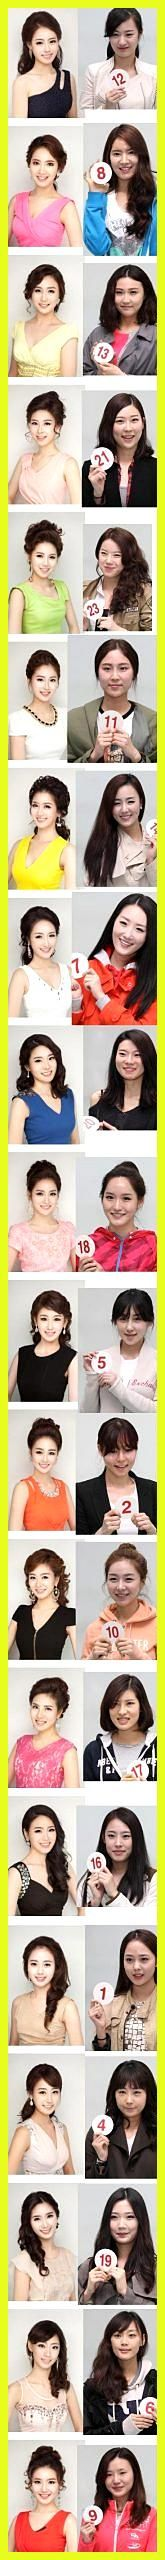 Miss Korean candidates before and after make-up so it's just me (and …